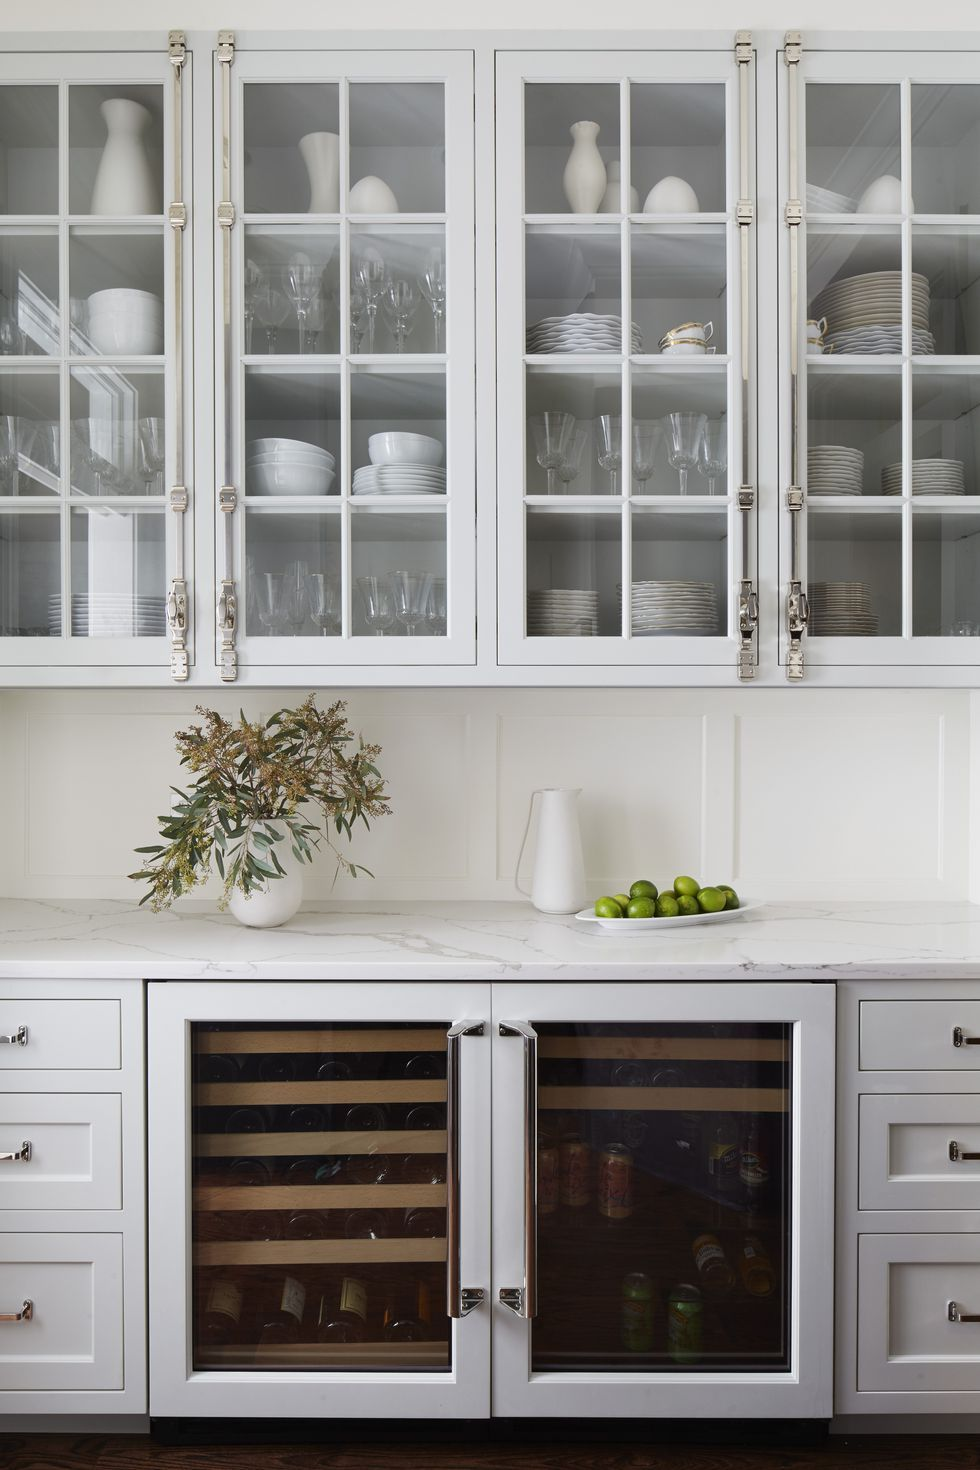 Powder Room By Amy Kartheiser Design: 45 Functional Butler's Pantries With Endless Charm